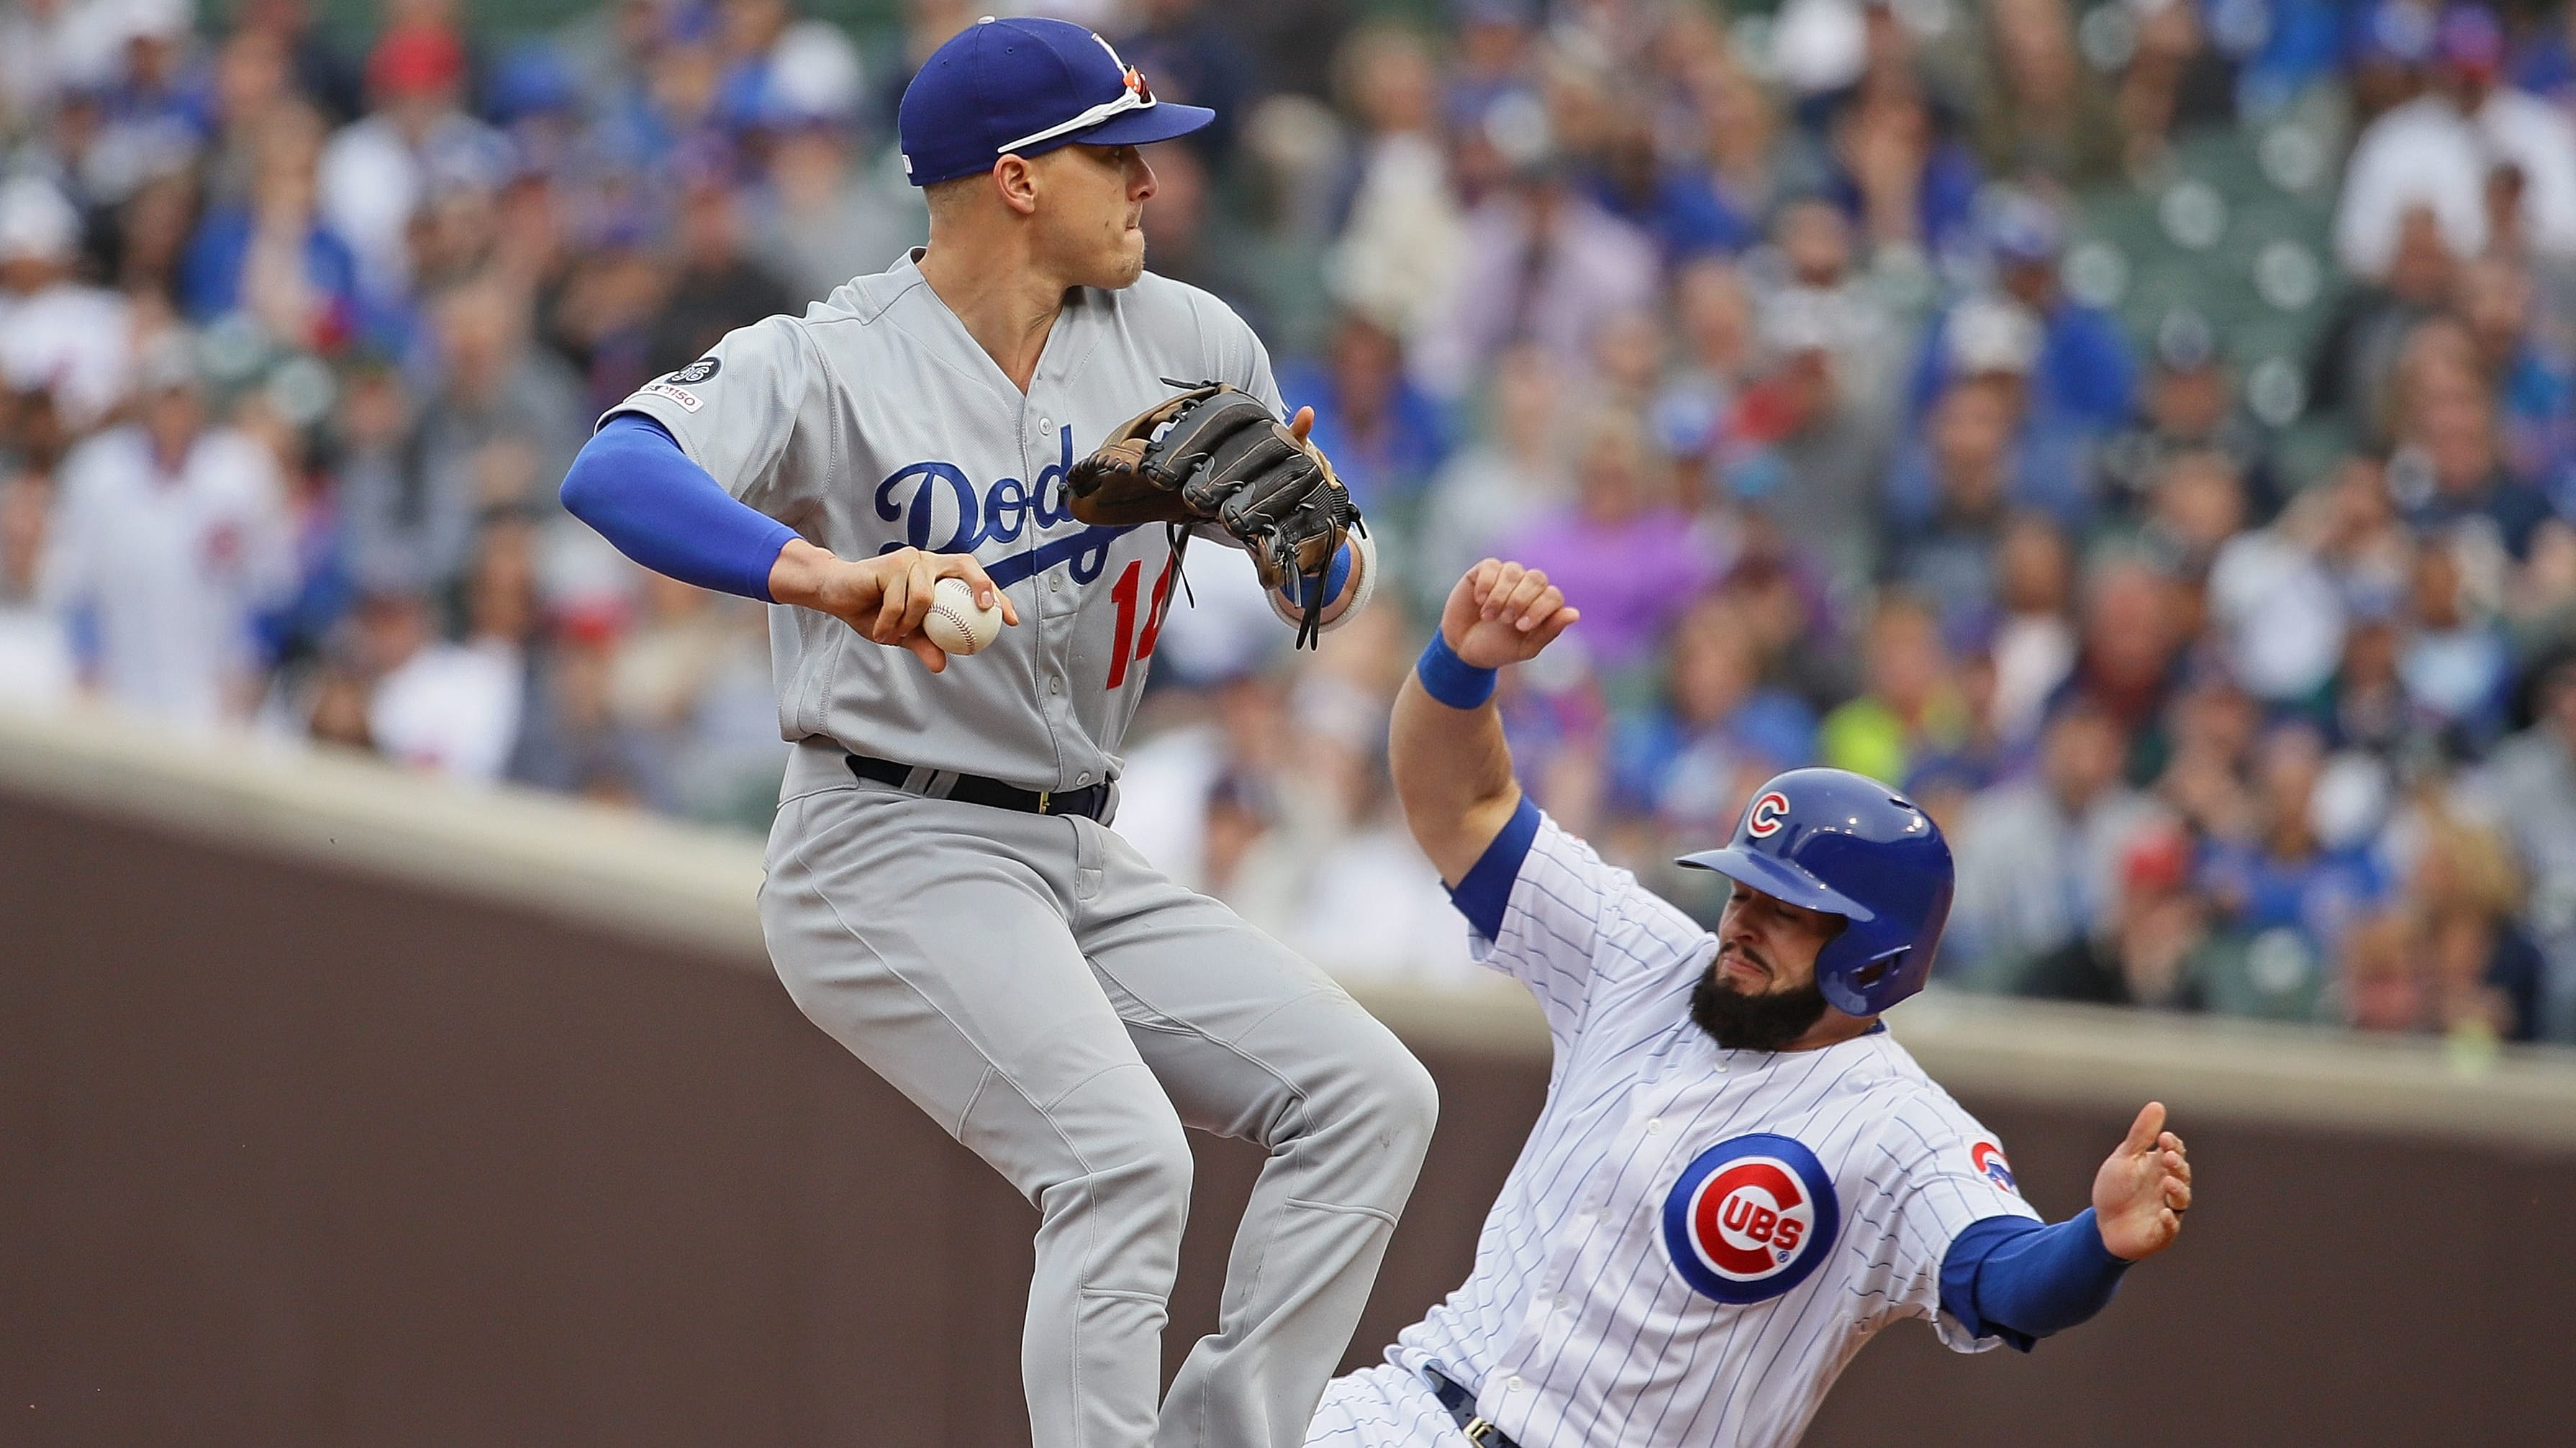 CHICAGO, ILLINOIS - APRIL 25: Enrique Hernandez #14 of the Los Angeles Dodgers turns a double play over David Bote #13 of the Chicago Cubs at Wrigley Field on April 25, 2019 in Chicago, Illinois. The Dodgers defeated the Cubs 2-1. (Photo by Jonathan Daniel/Getty Images)